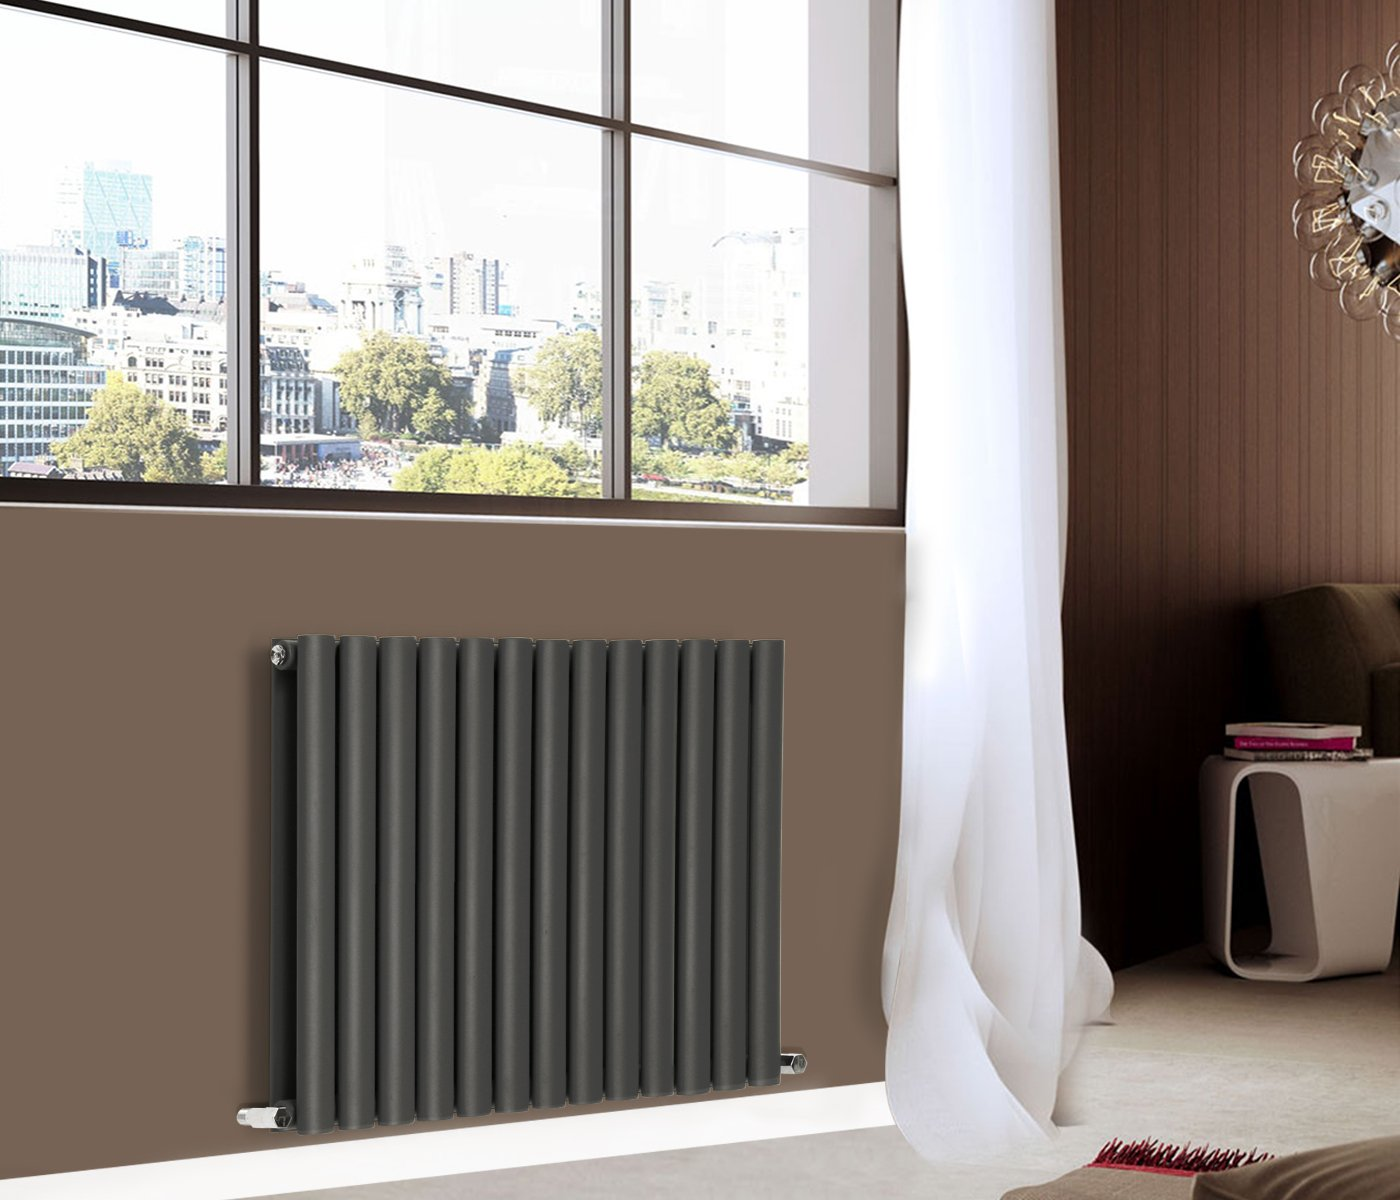 NRG 600x1180mm Oval Column Designer Radiator Double Panel Anthracite Bathroom Central Heating Manufactured for NRG-Radiator